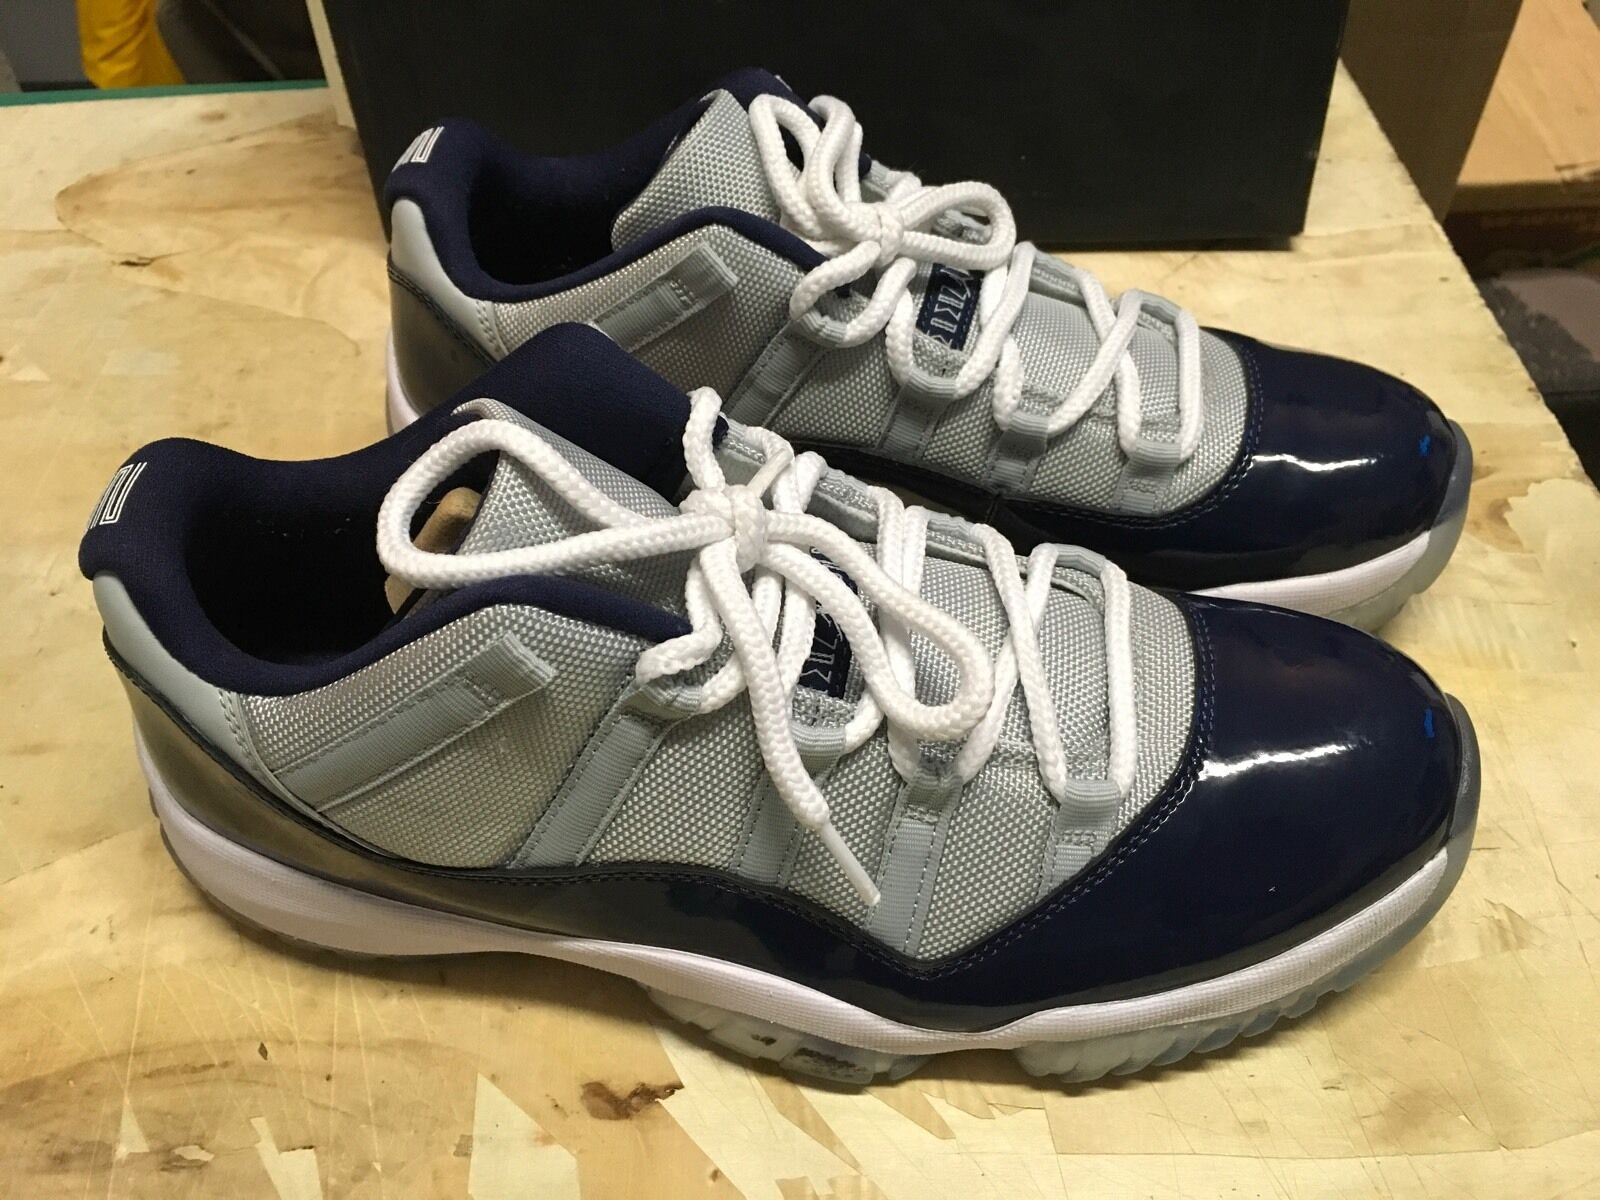 VNDS MENS NIKE AIR JORDAN 11 RETRO LOW GREY MIST MAX 528895 007 SZ 11 MAX MIST AIR FRE 523c2f